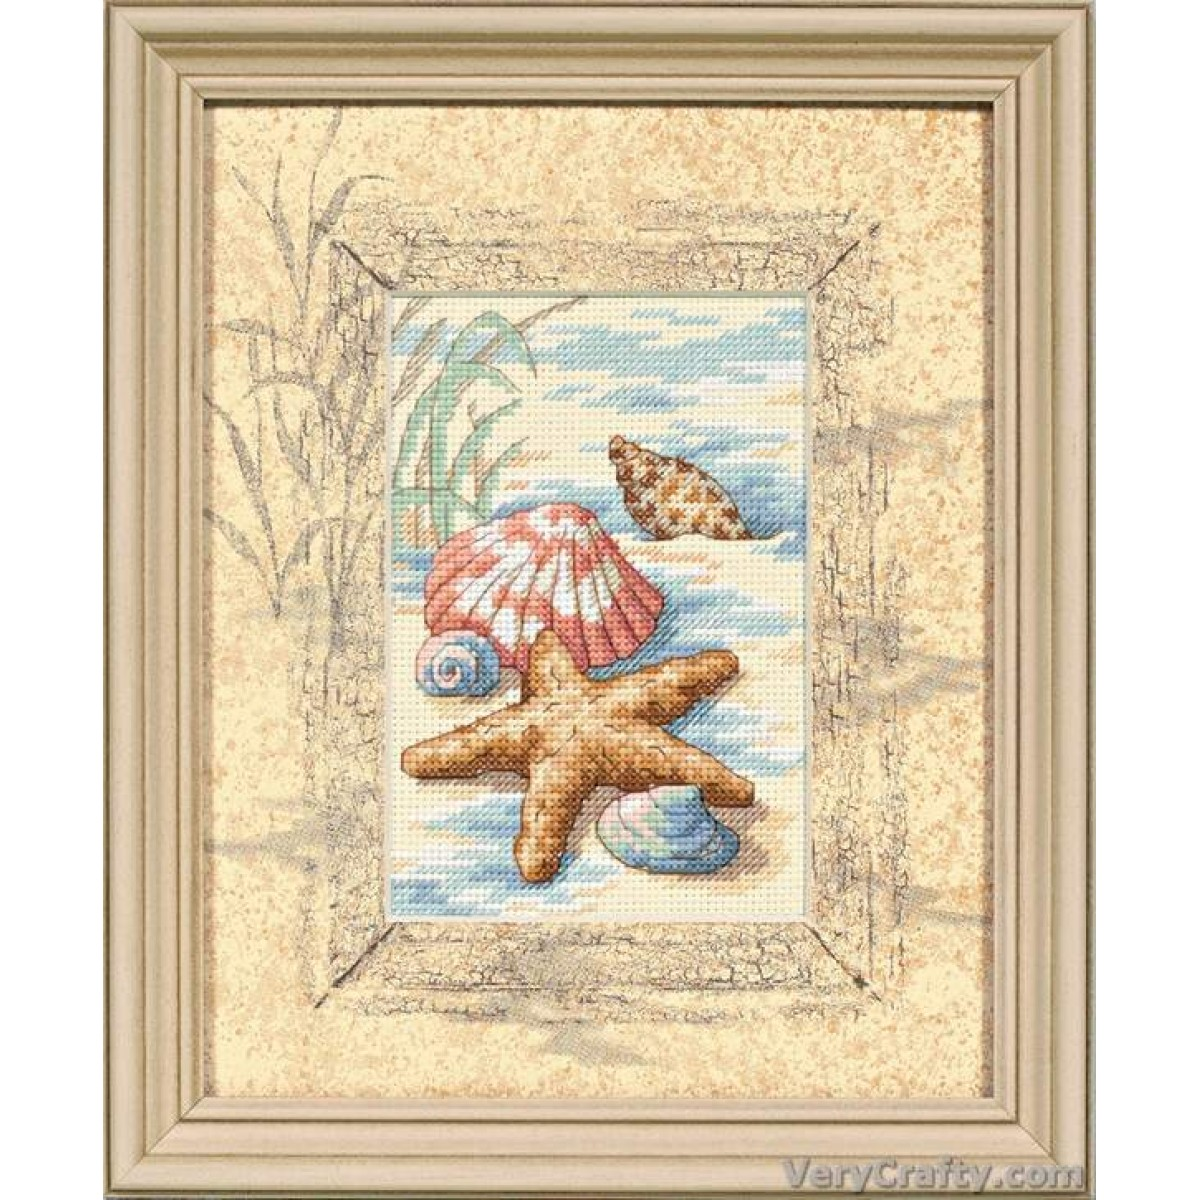 D06956 Counted Cross Stitch Kit Matted Accent Dimensions Shells in Sand